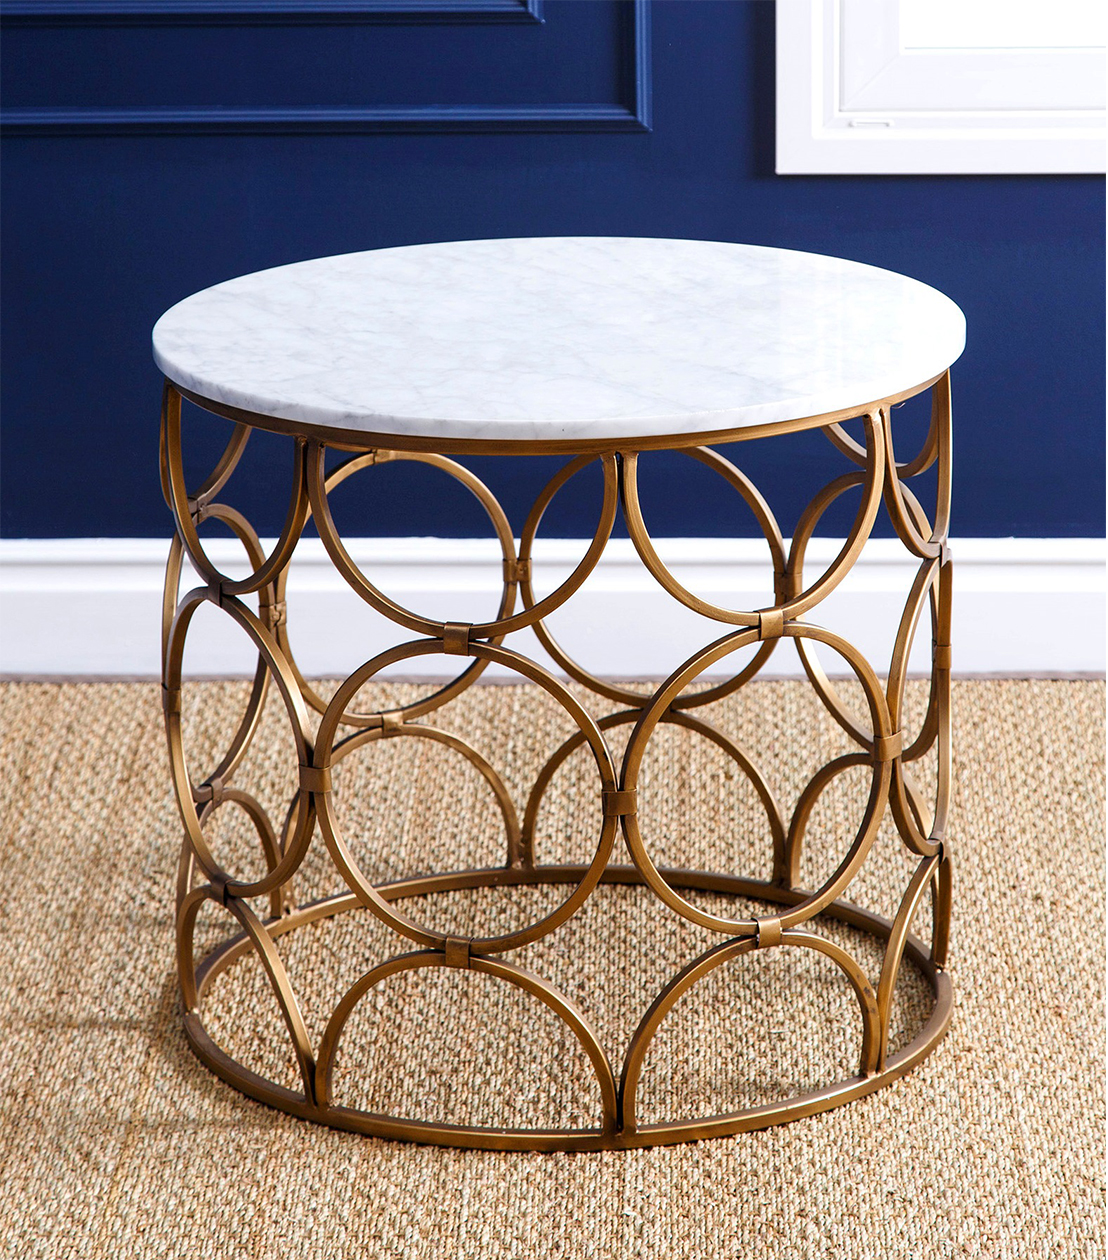 accent tables roland faux marble coffee table home goods lamps wicker furniture set clearance mahogany nest garden storage solutions battery run small wood side bengal manor mango